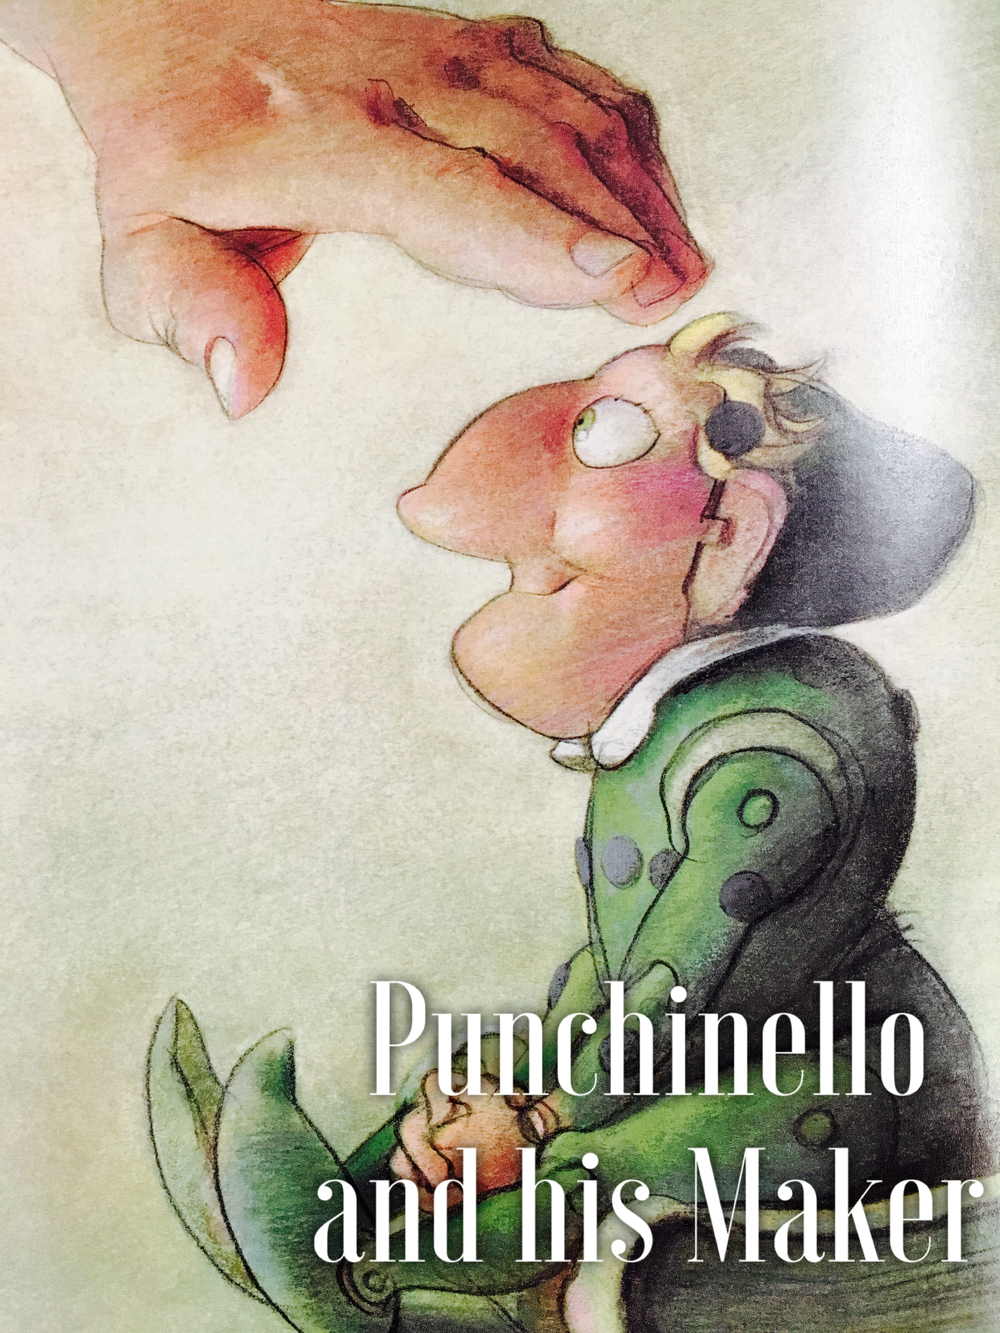 We'll hear Punchinello's story of overcoming condemning words.